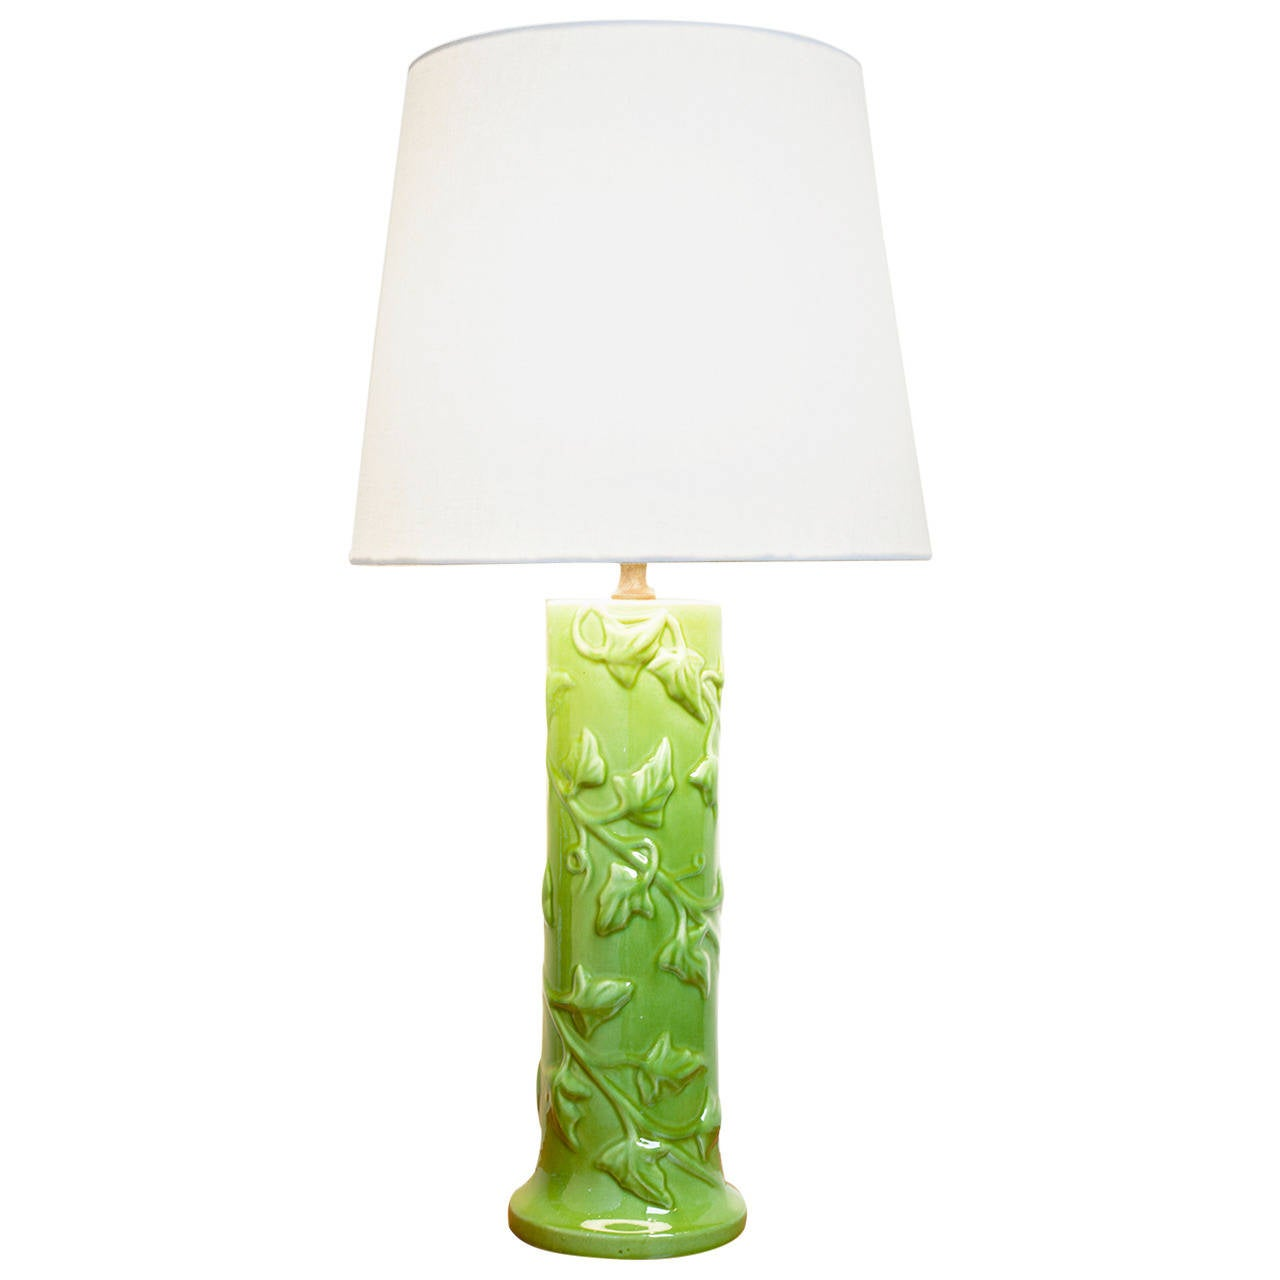 lime green art pottery lamp for sale at 1stdibs. Black Bedroom Furniture Sets. Home Design Ideas